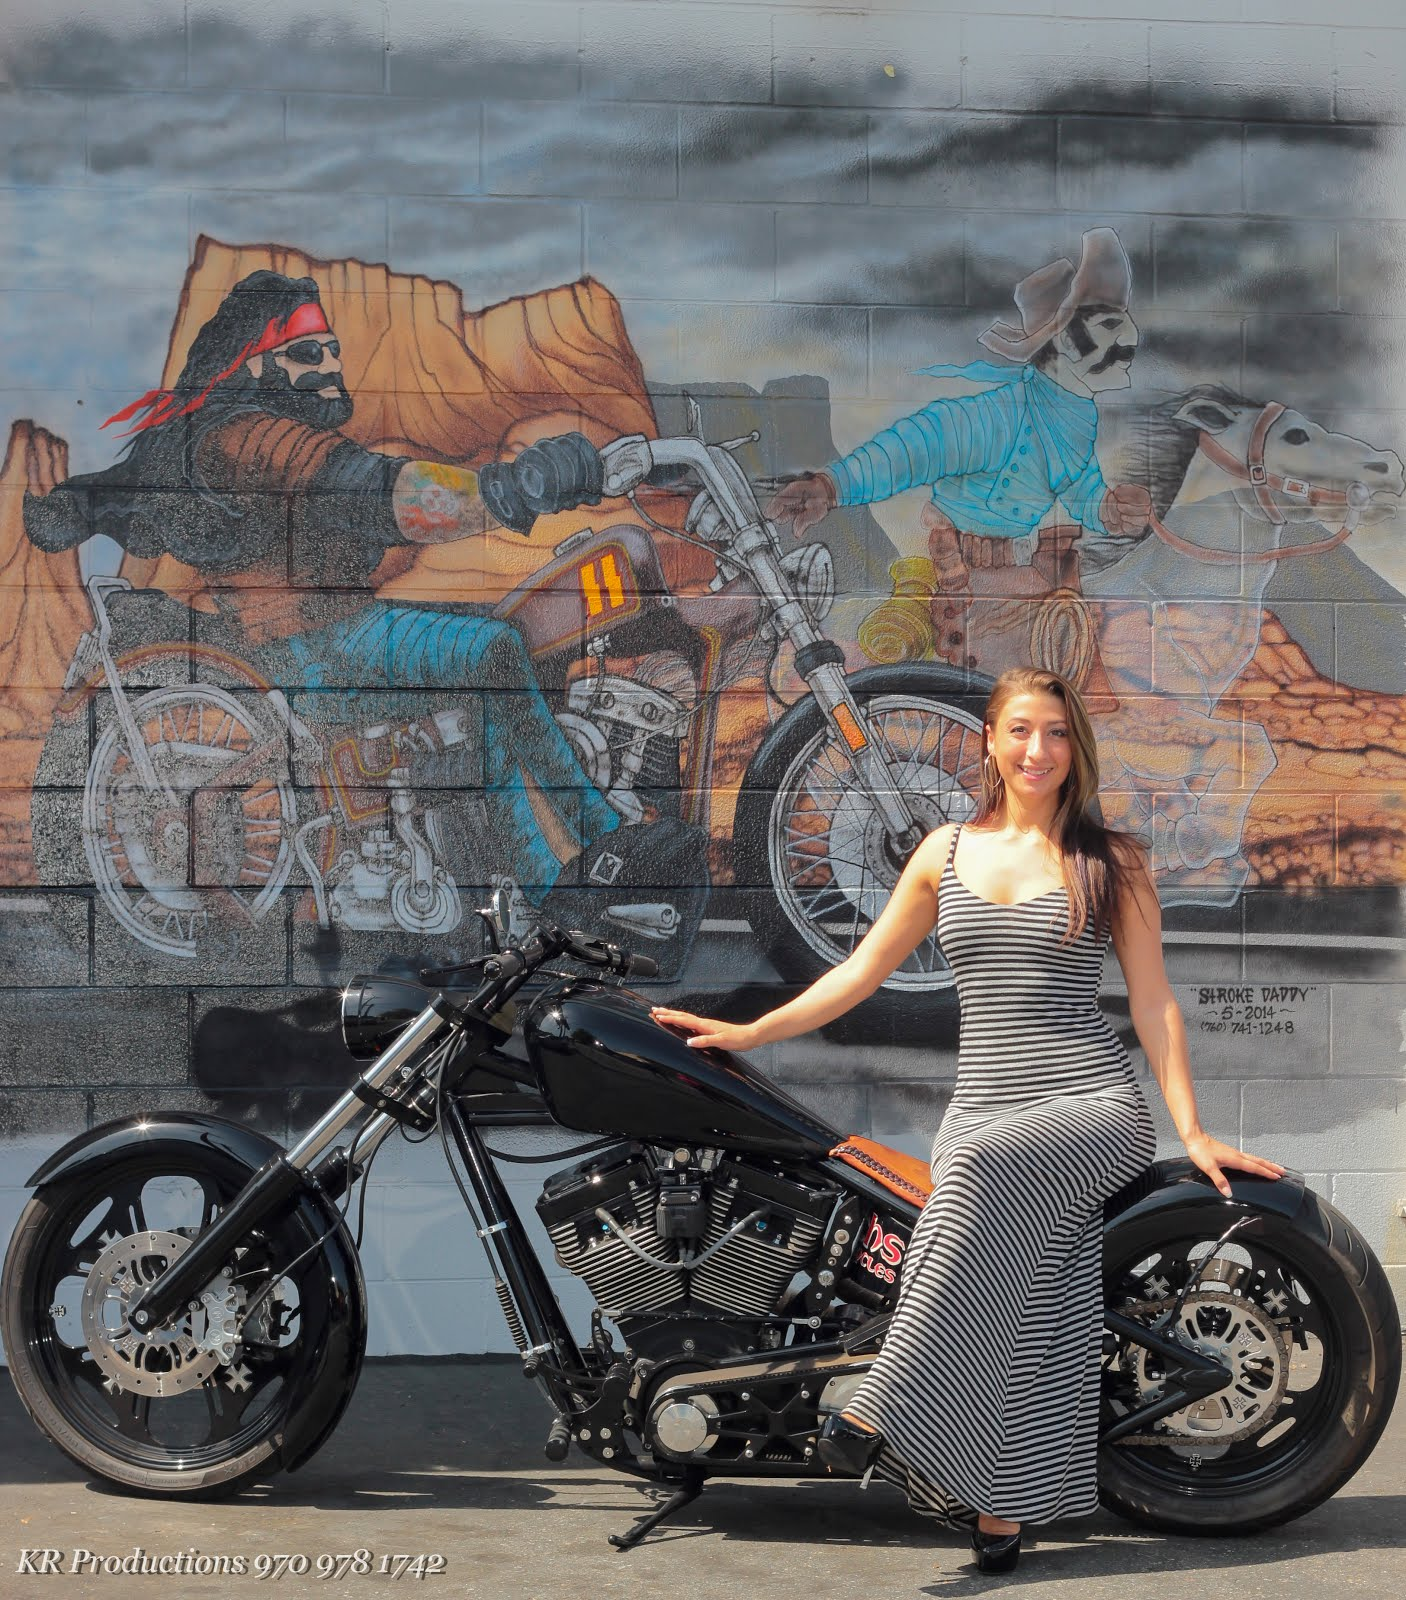 bikers of america, know your rights!: babe of the day